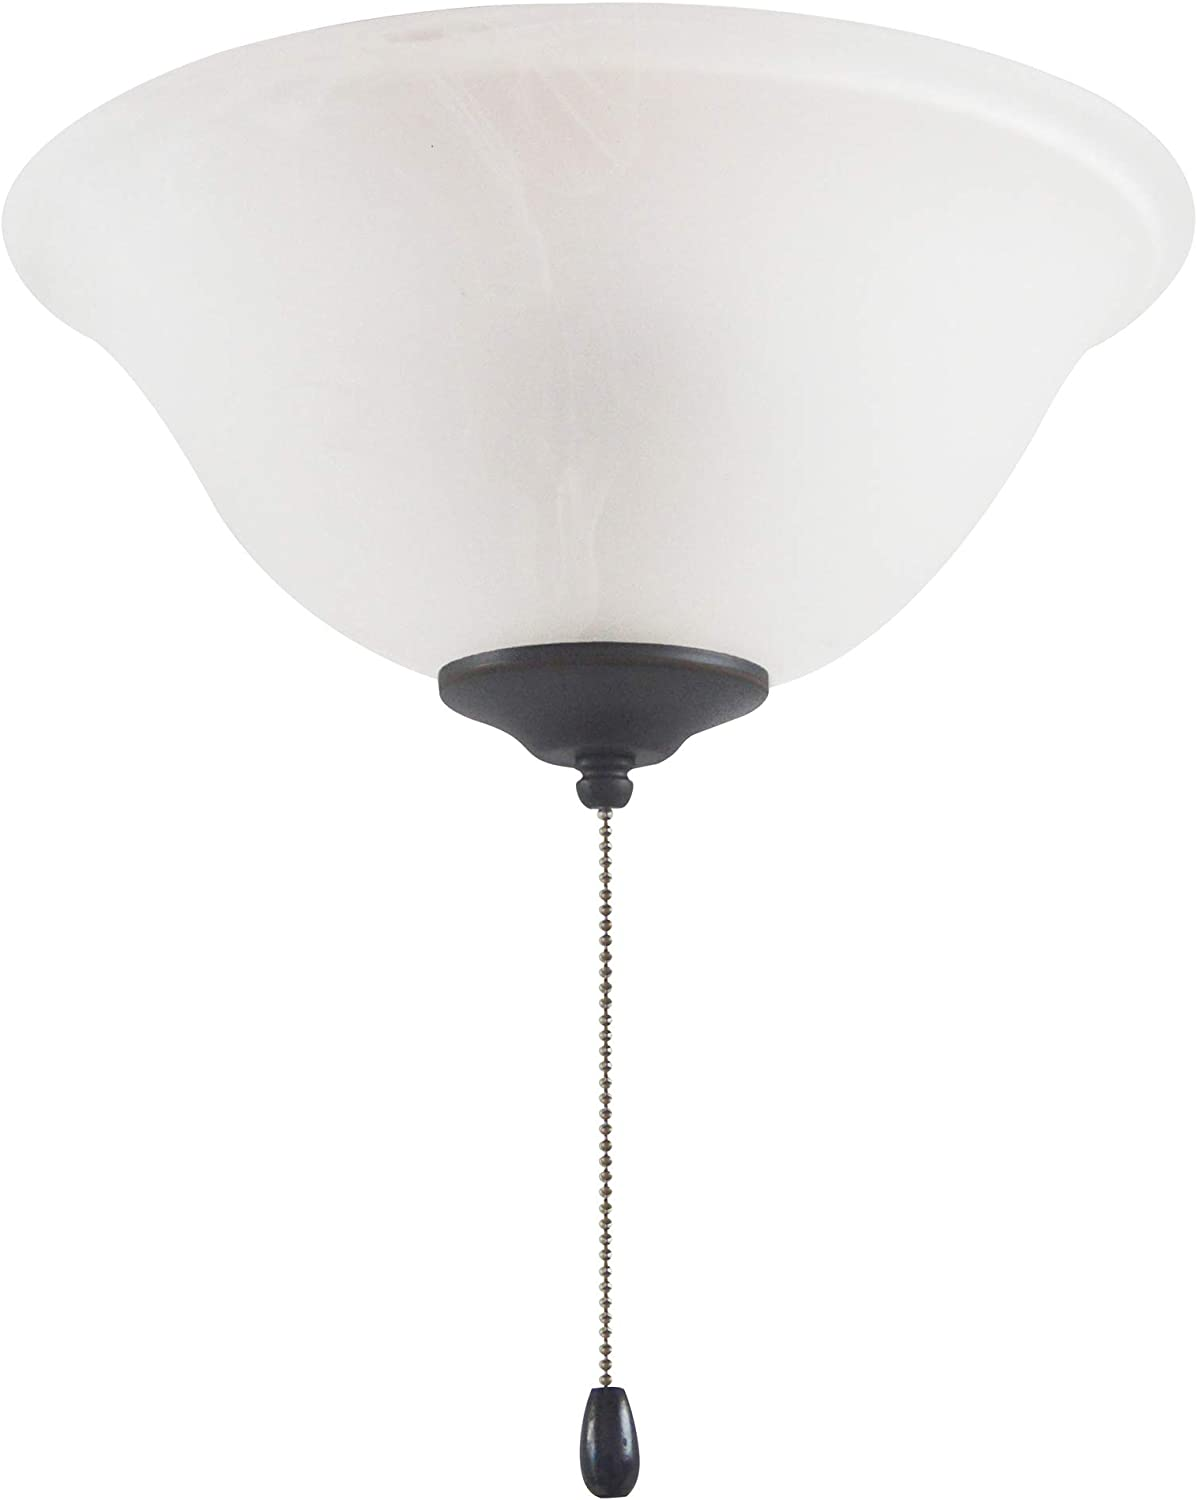 Design House 156497 Ceiling Fan LED Kit 3-Light Bowl with Pull Chain, Oil Rubbed Bronze